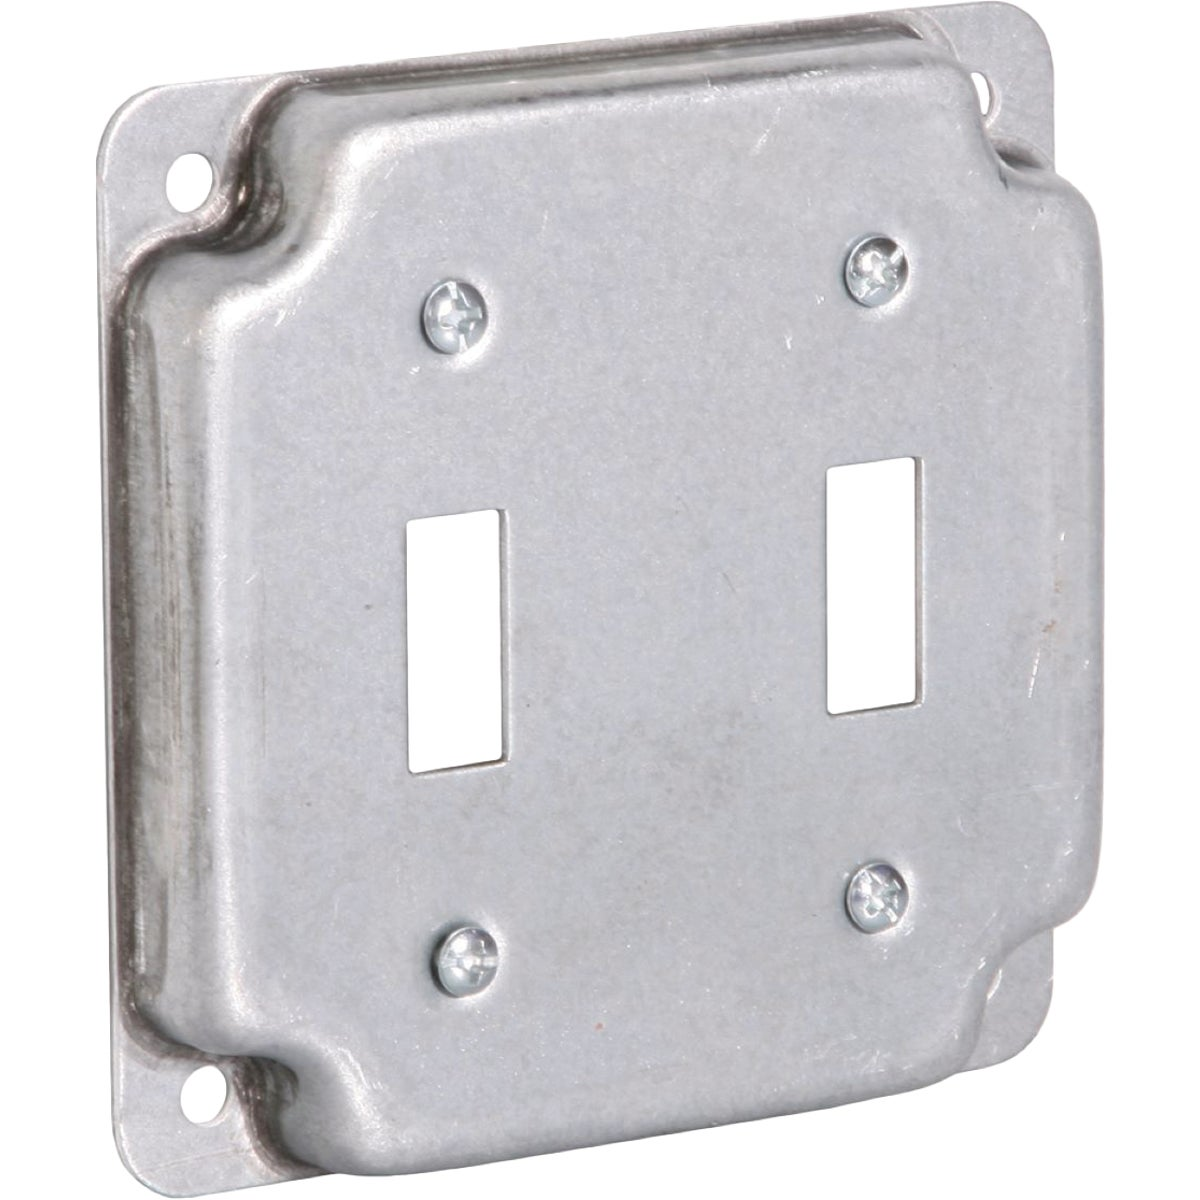 "4"" SQ 2-SWITCH BOX COVER - RS530 by Thomas & Betts"